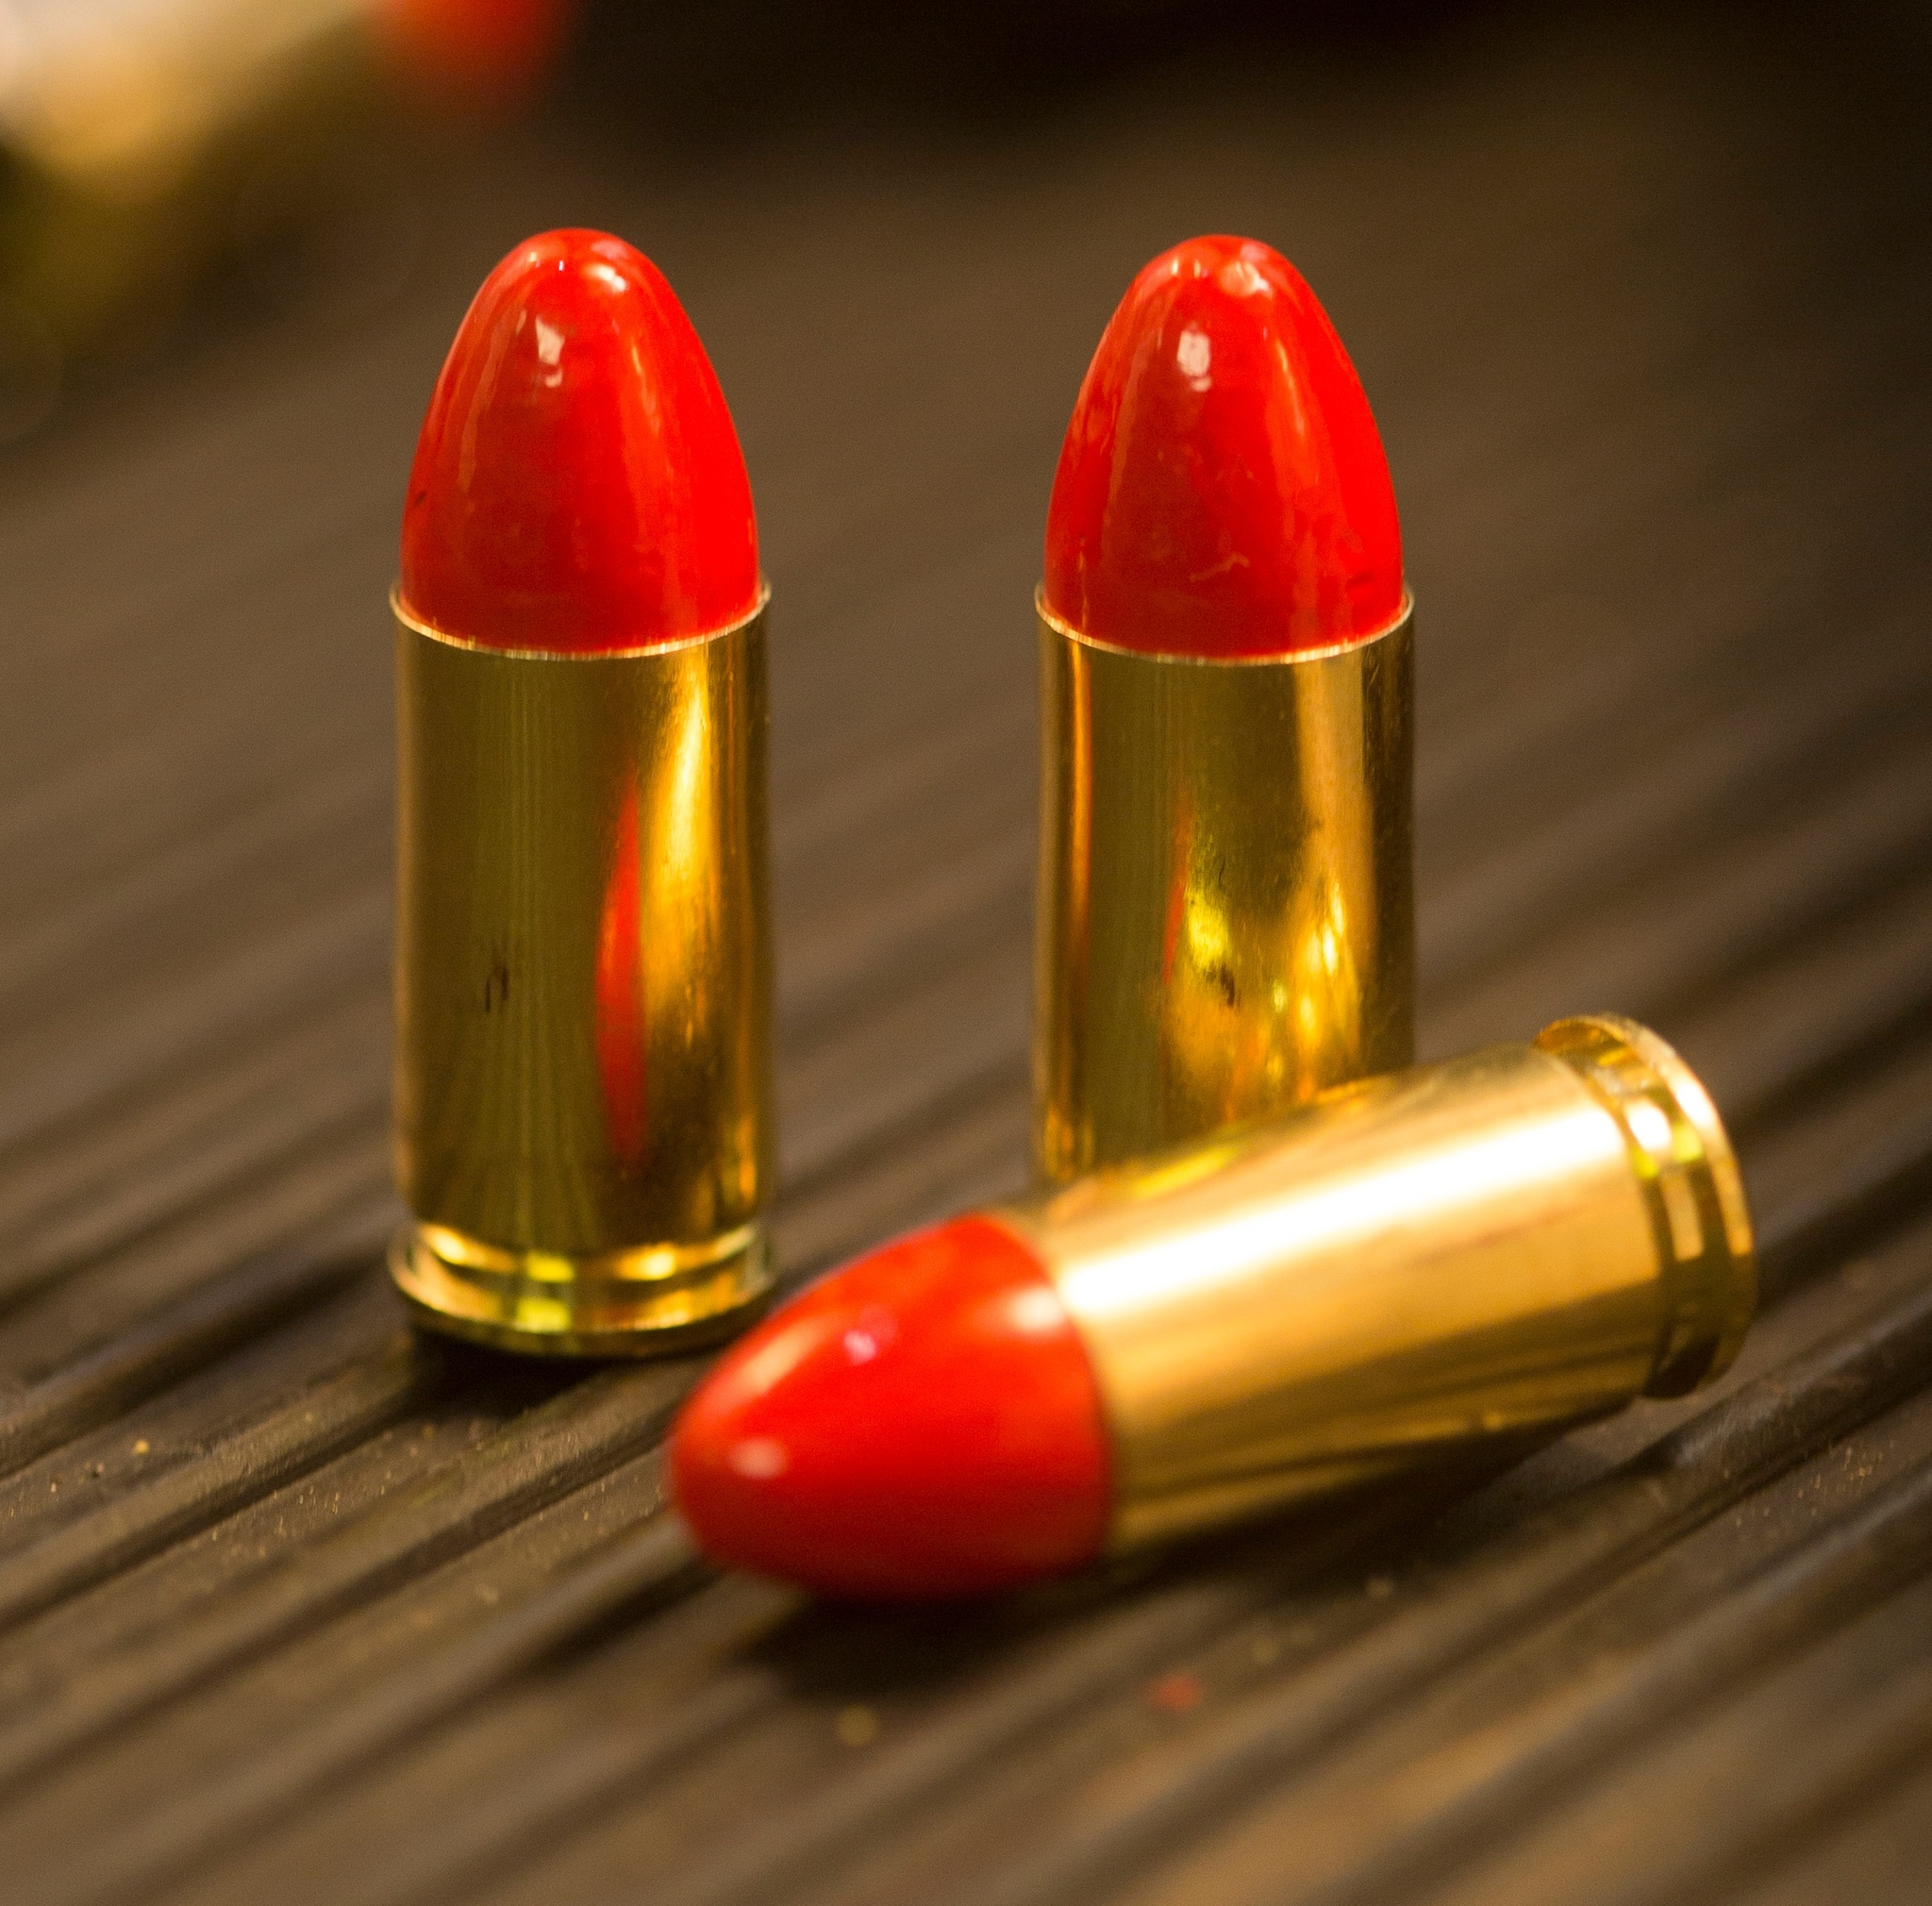 The Syntech component bullet allows handloaders to take control of their target loads. (Photo: Vista Outdoors)